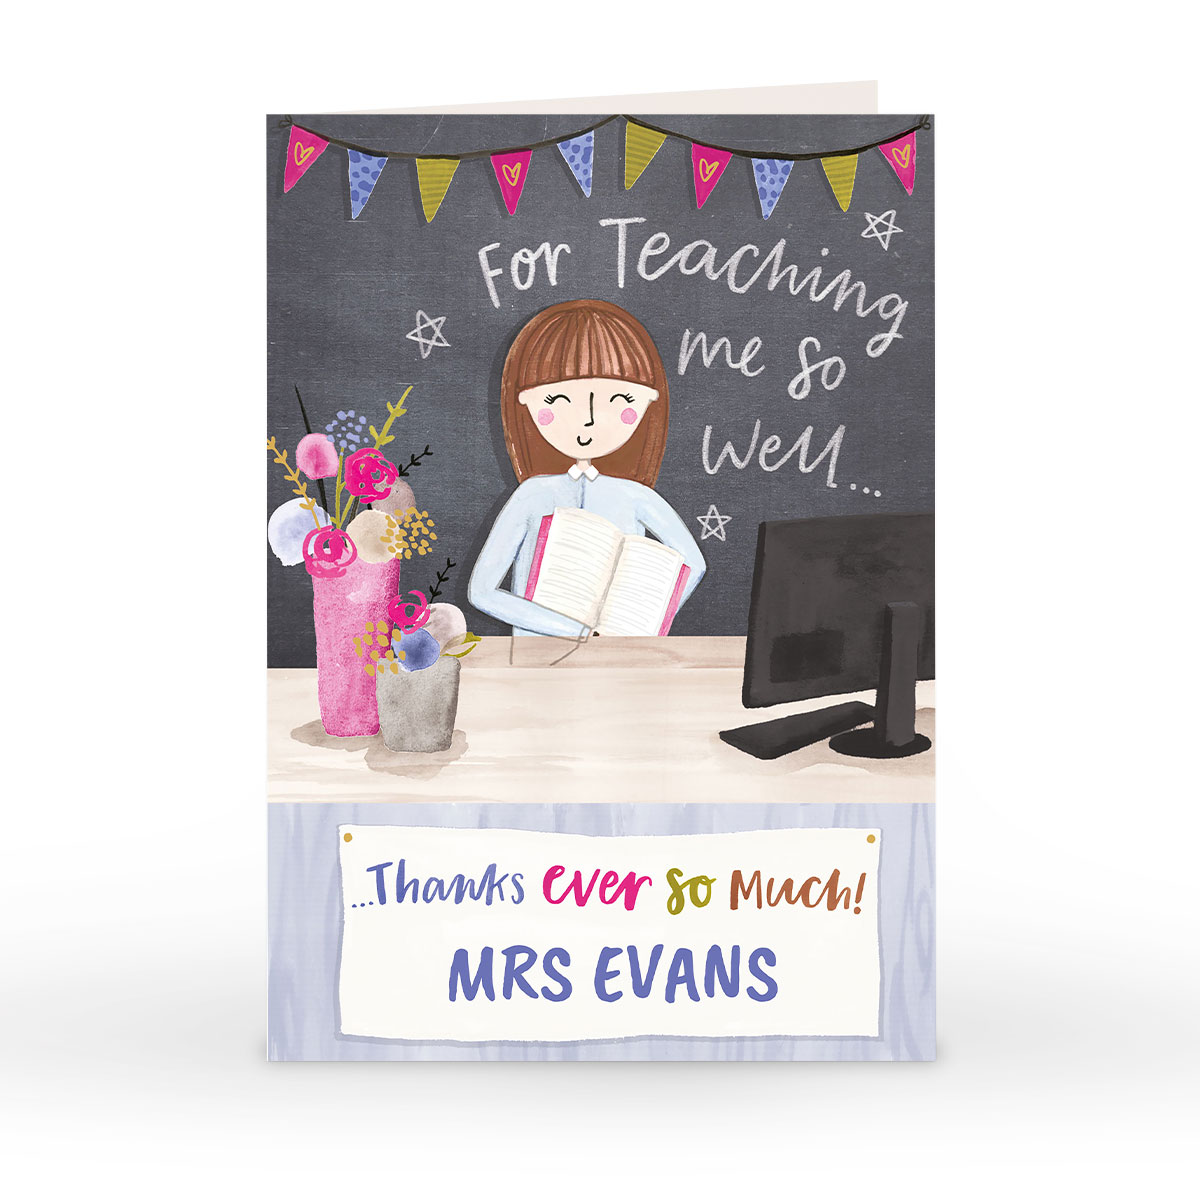 Personalised Thank You Teacher Card - For Teaching Me So Well